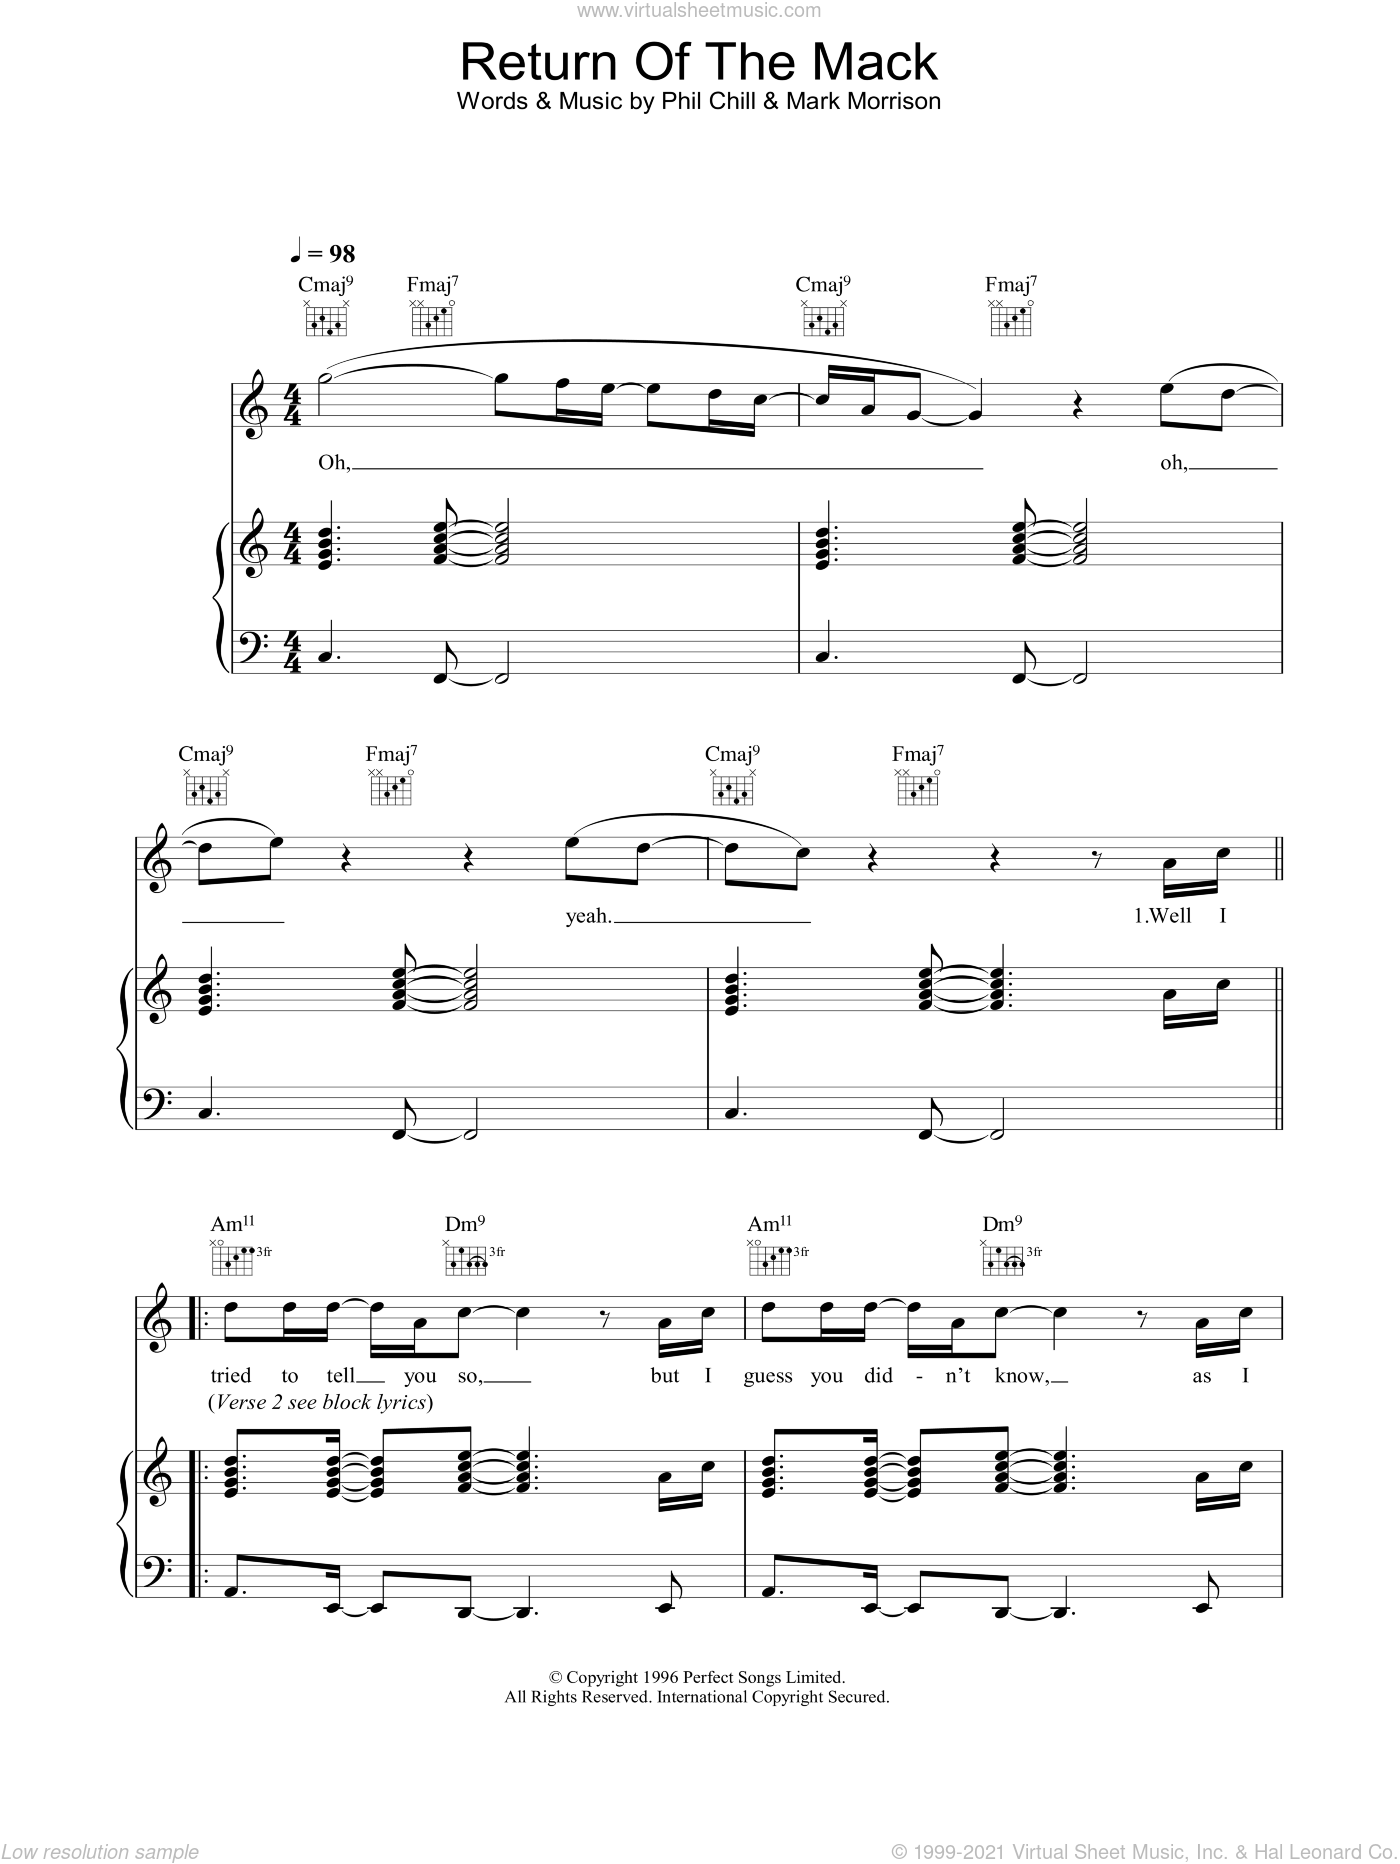 Return Of The Mack sheet music for voice, piano or guitar by Phil Chill